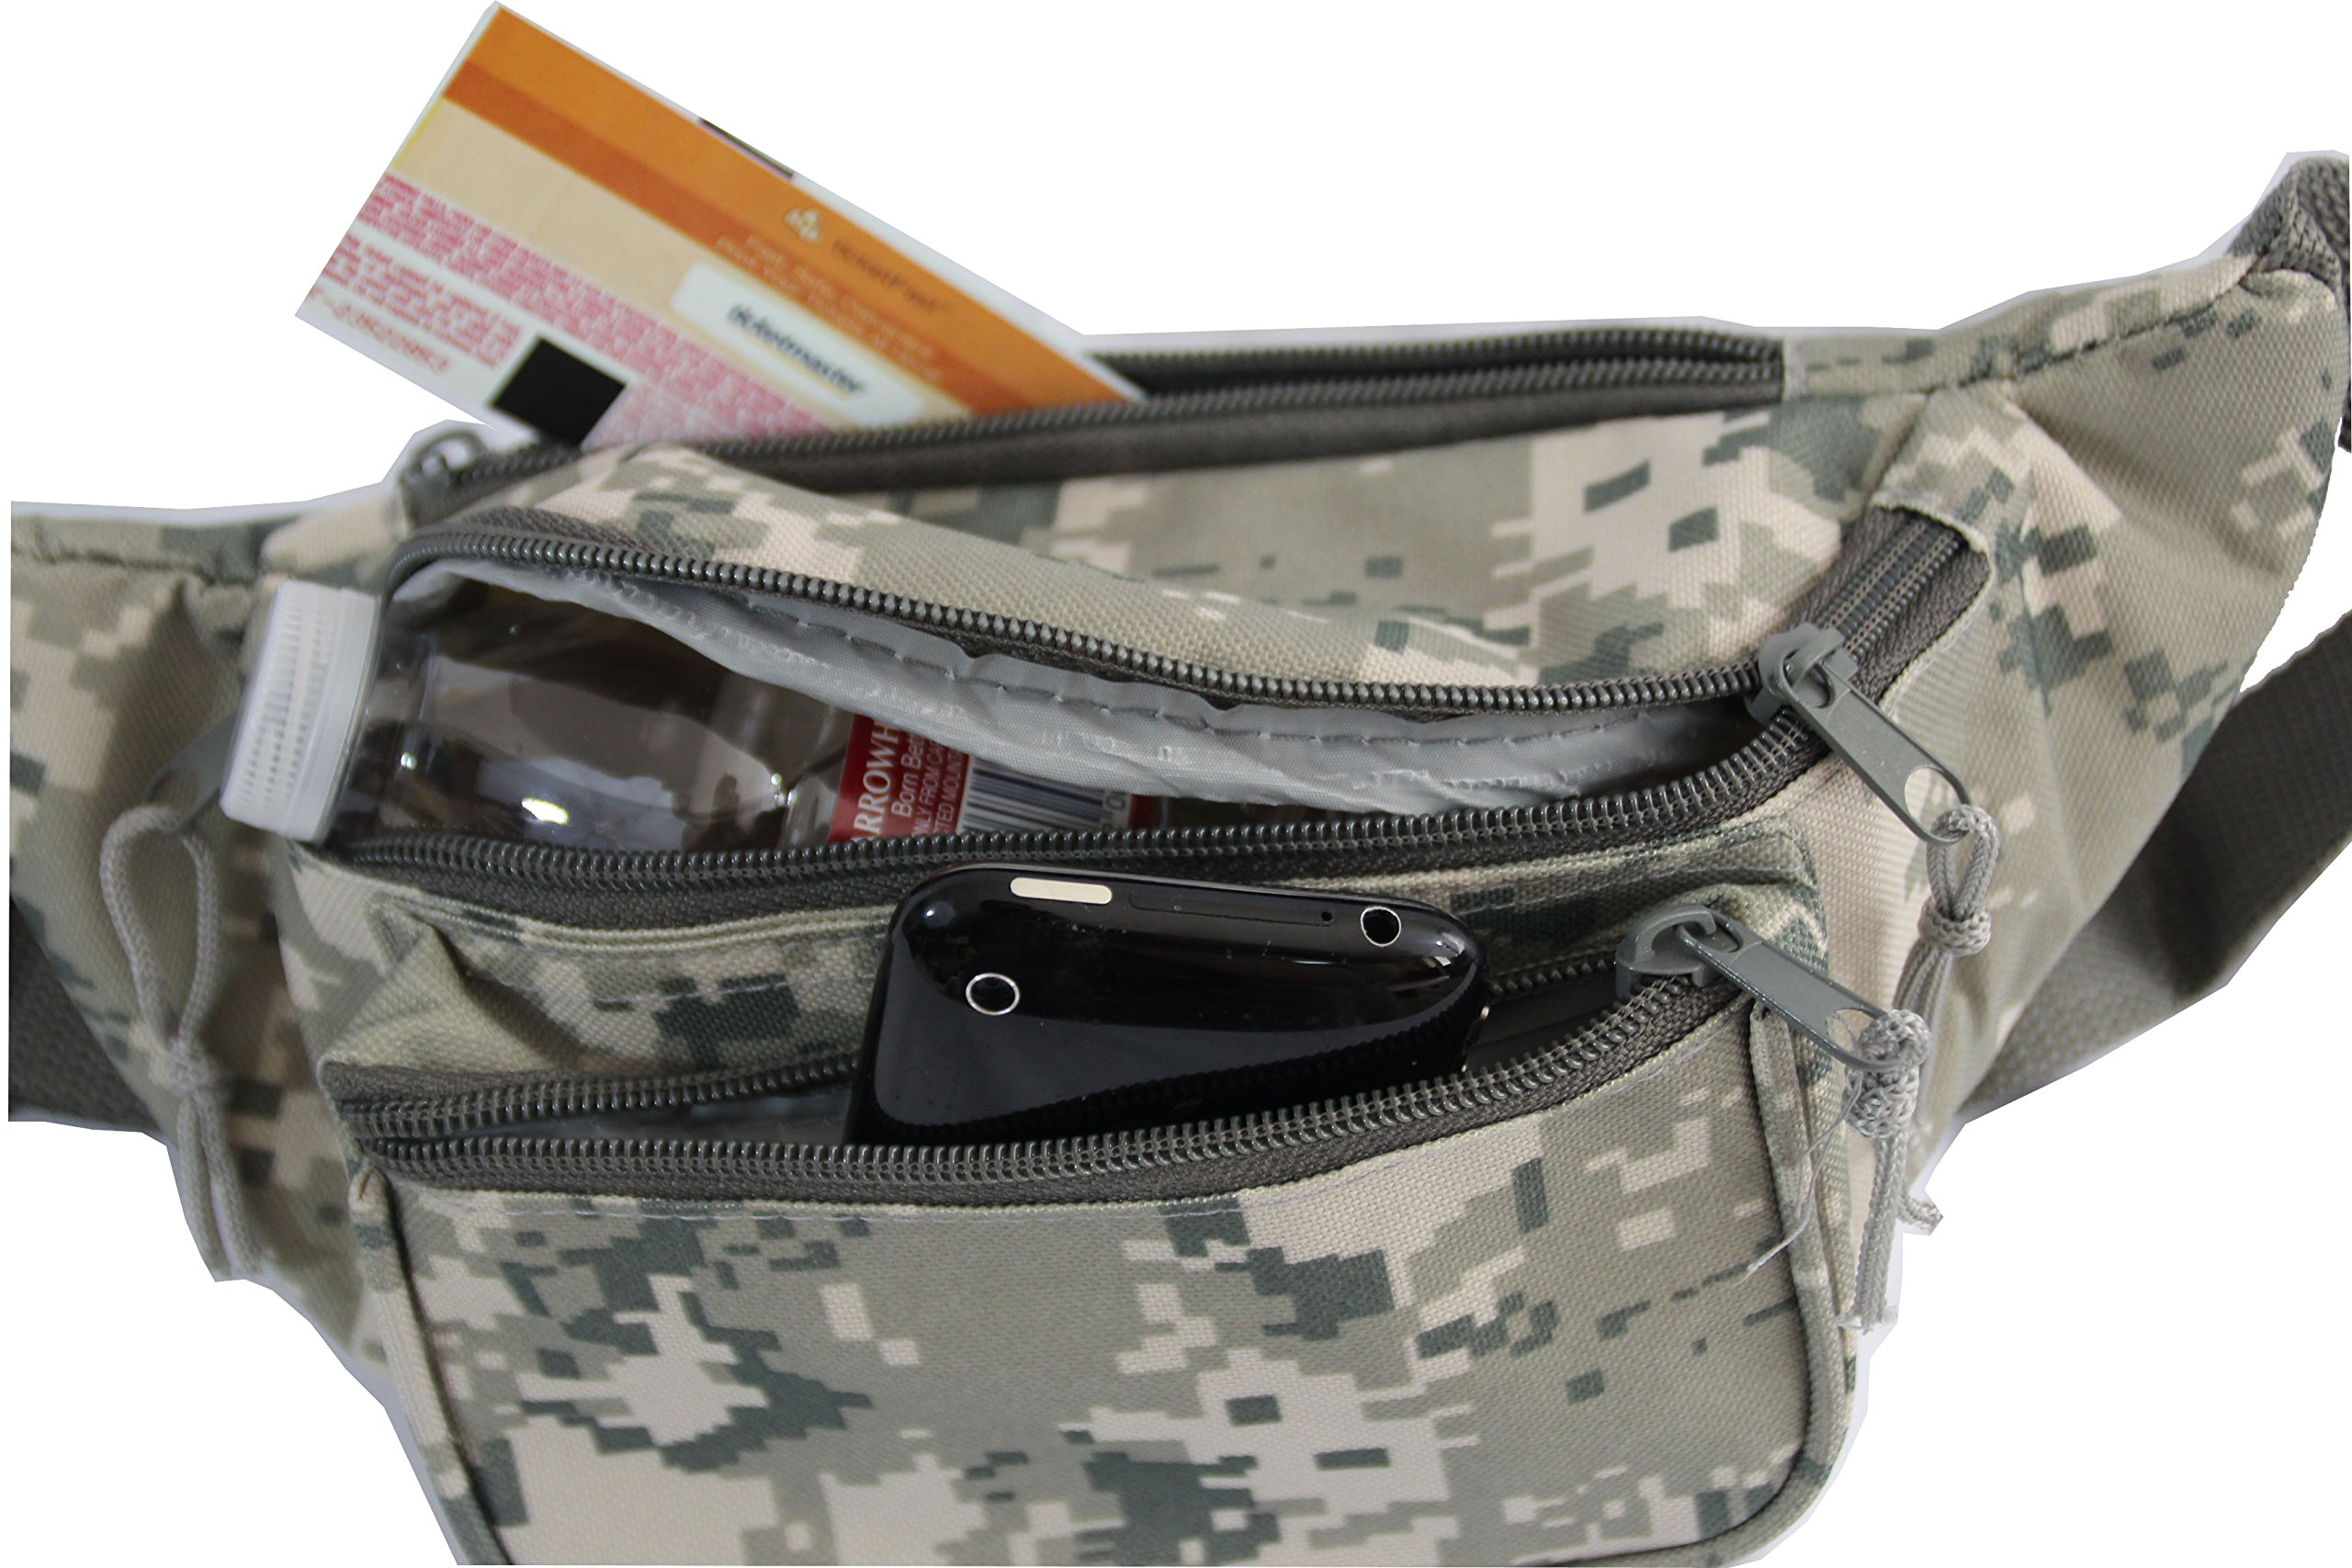 Xtitix Military Tan Digital Camouflage 3 zipper pocket Fanny pack Waist Bag Camo by Xtitix (Image #3)